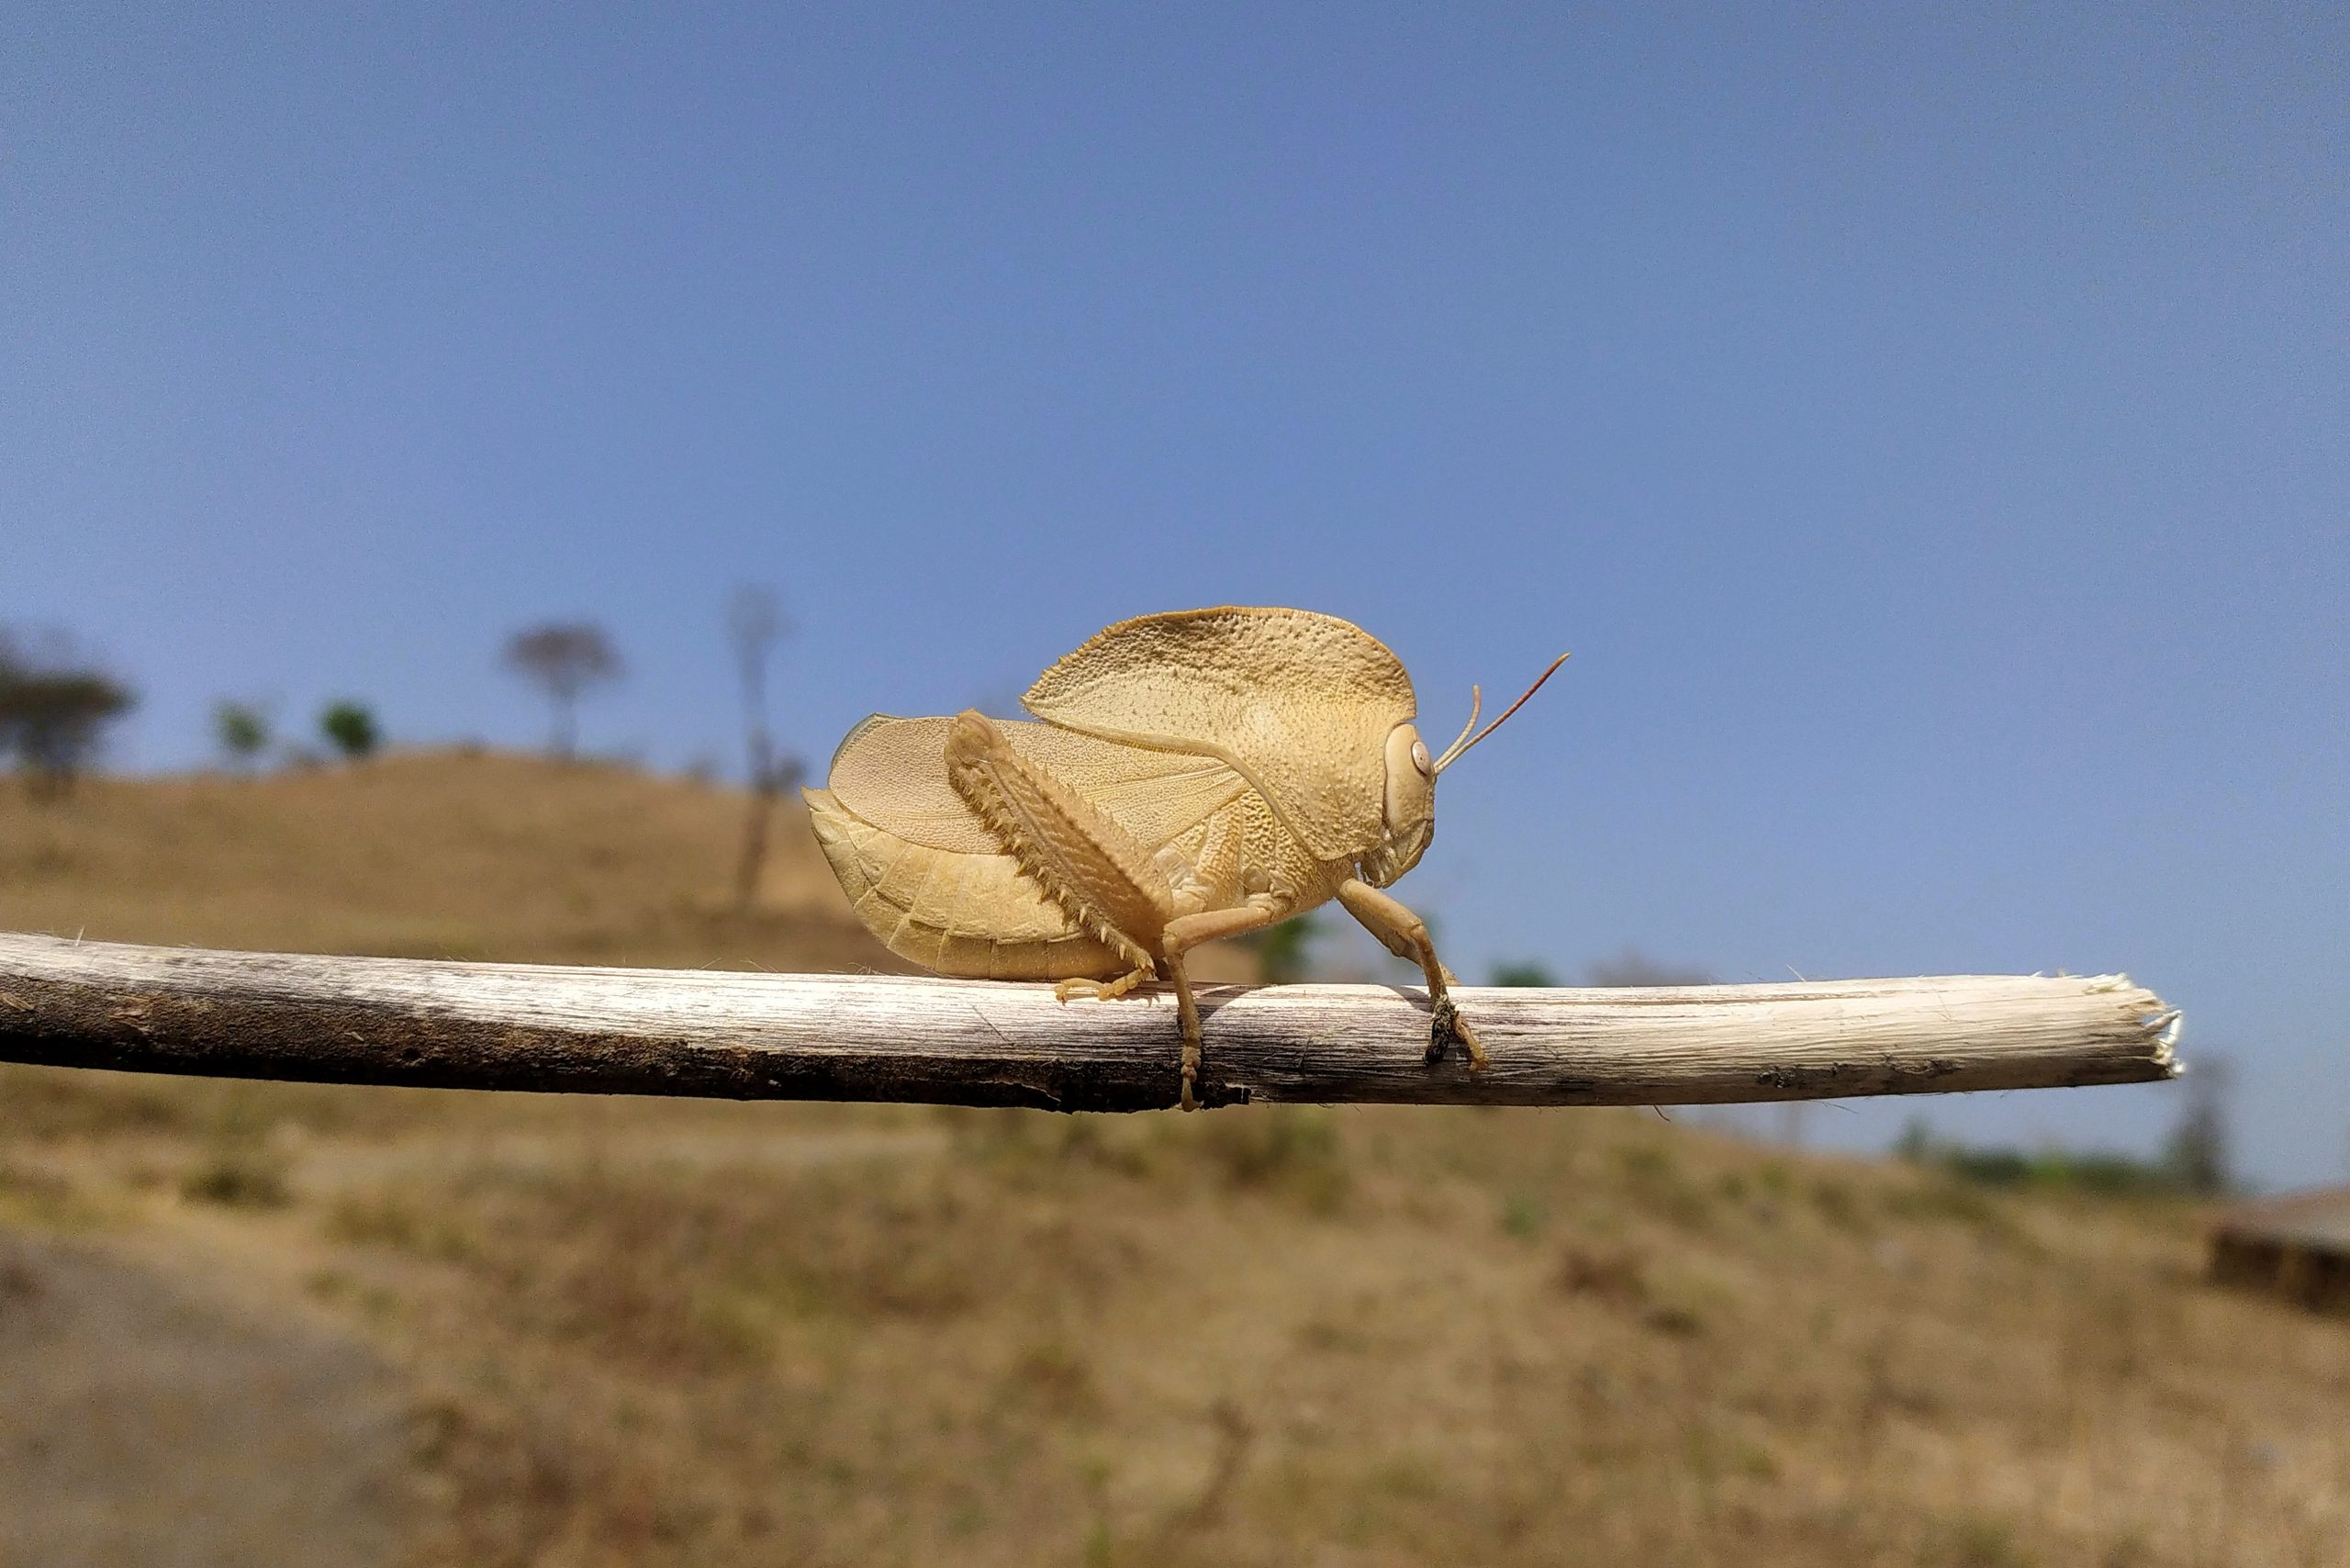 A grasshopper on stick